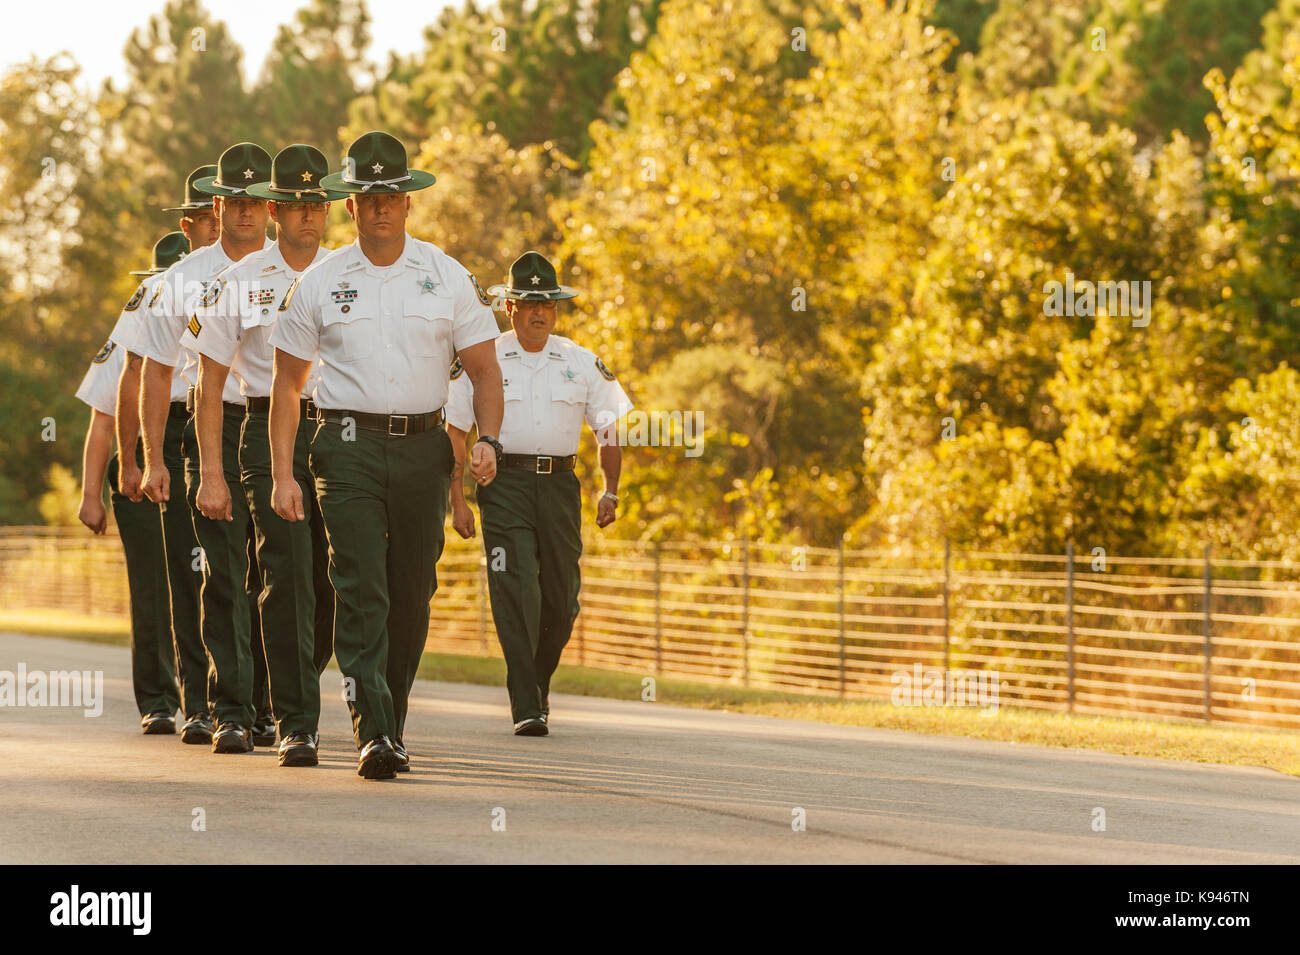 The law enforcement training staff, or drill instructors, march in formation to greet a new police academy recruit - Stock Image